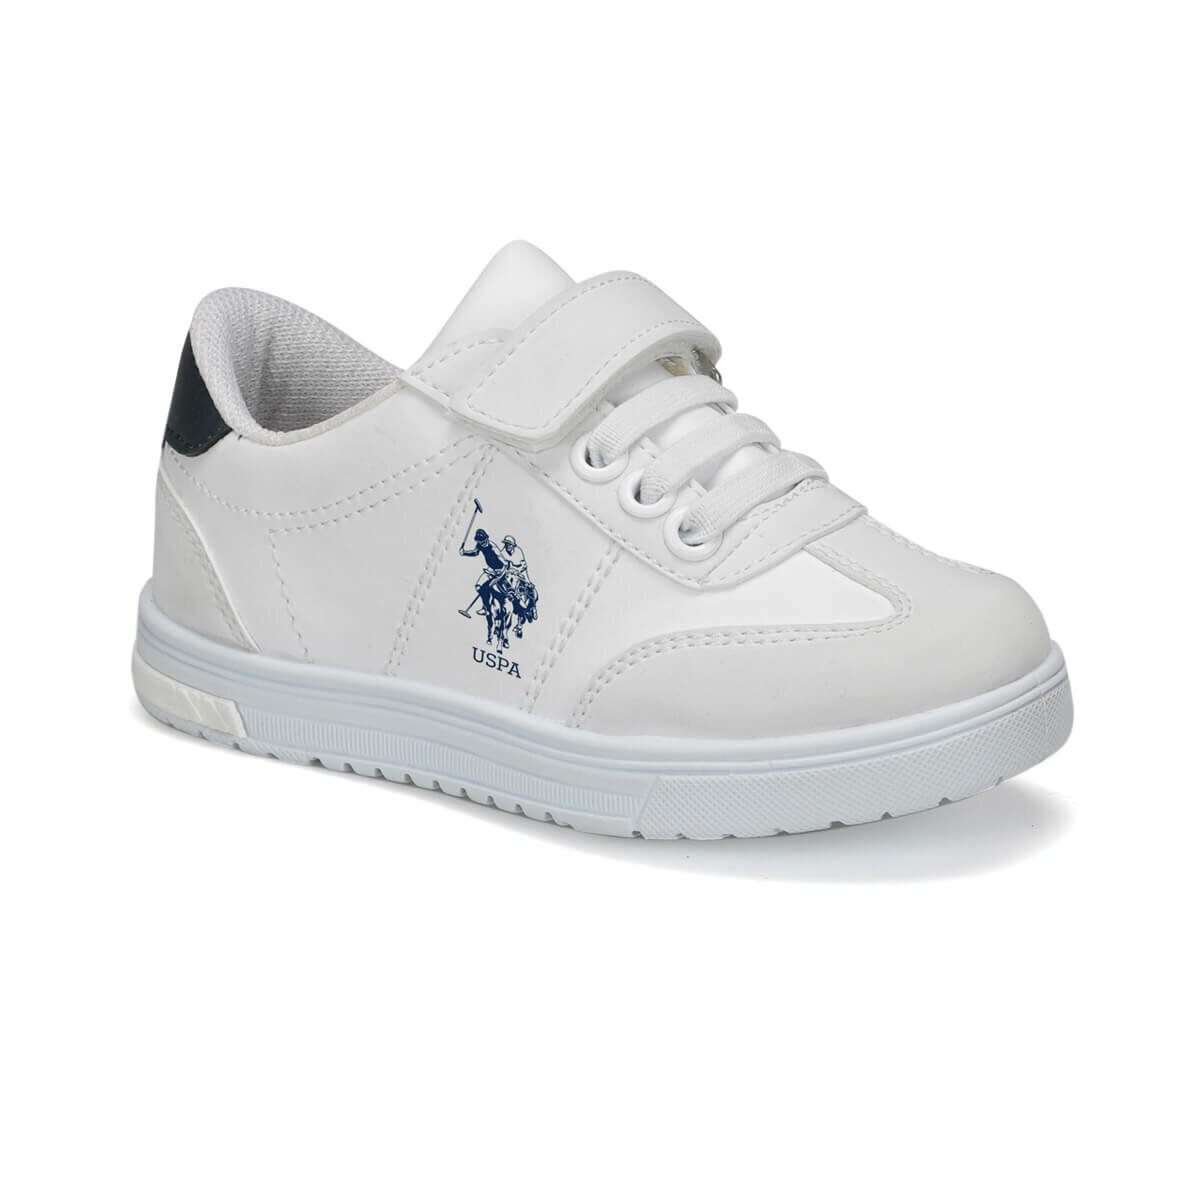 FLO GLOCK 9PR White Male Child Sneaker Shoes U.S. POLO ASSN.